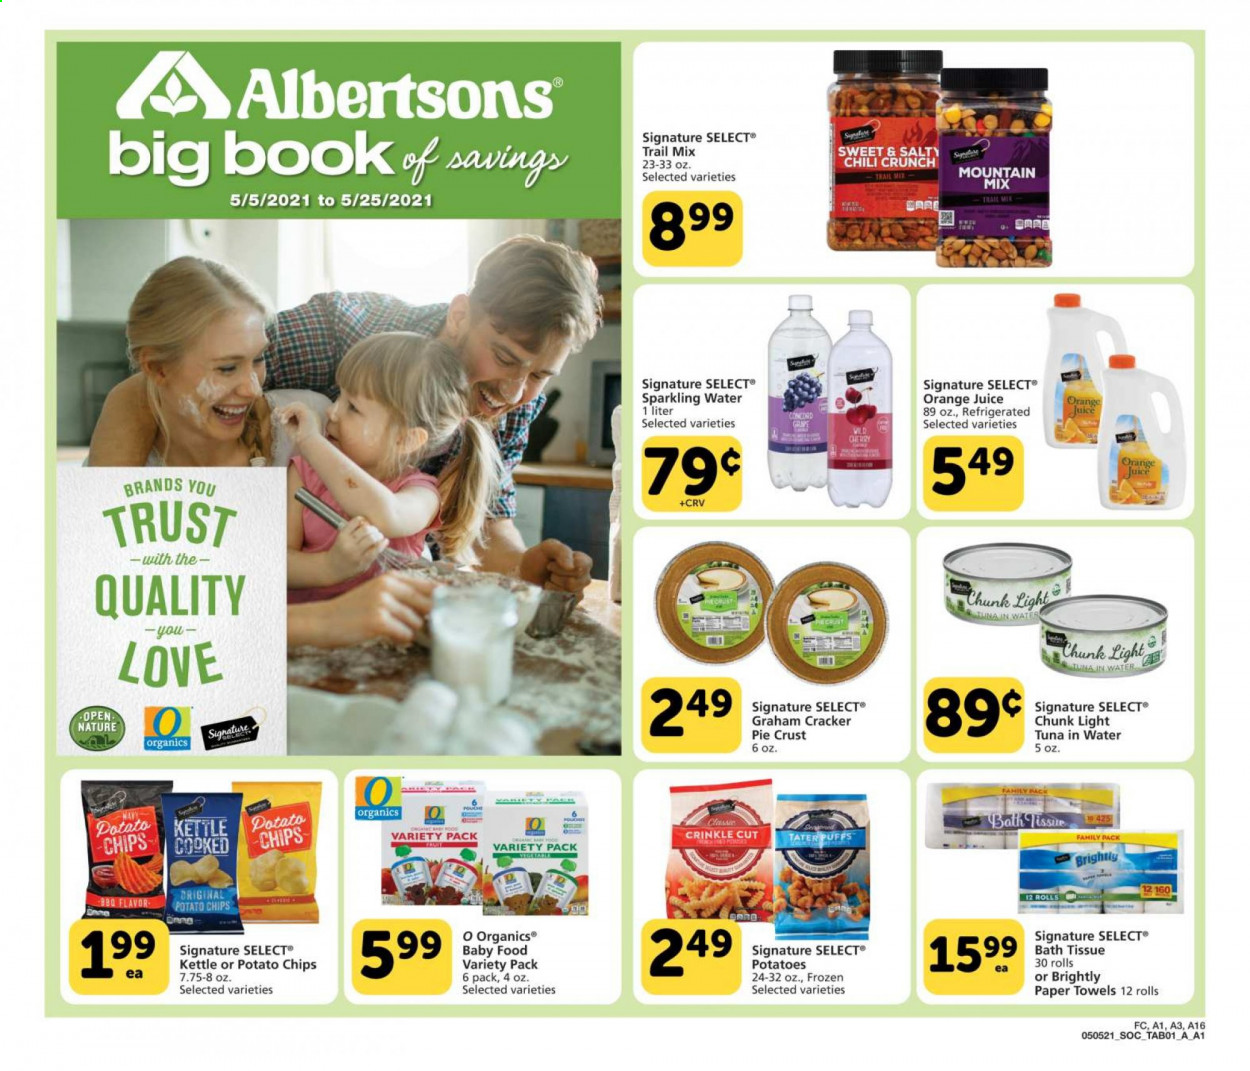 Albertsons Ad from may 5 to 25 2021